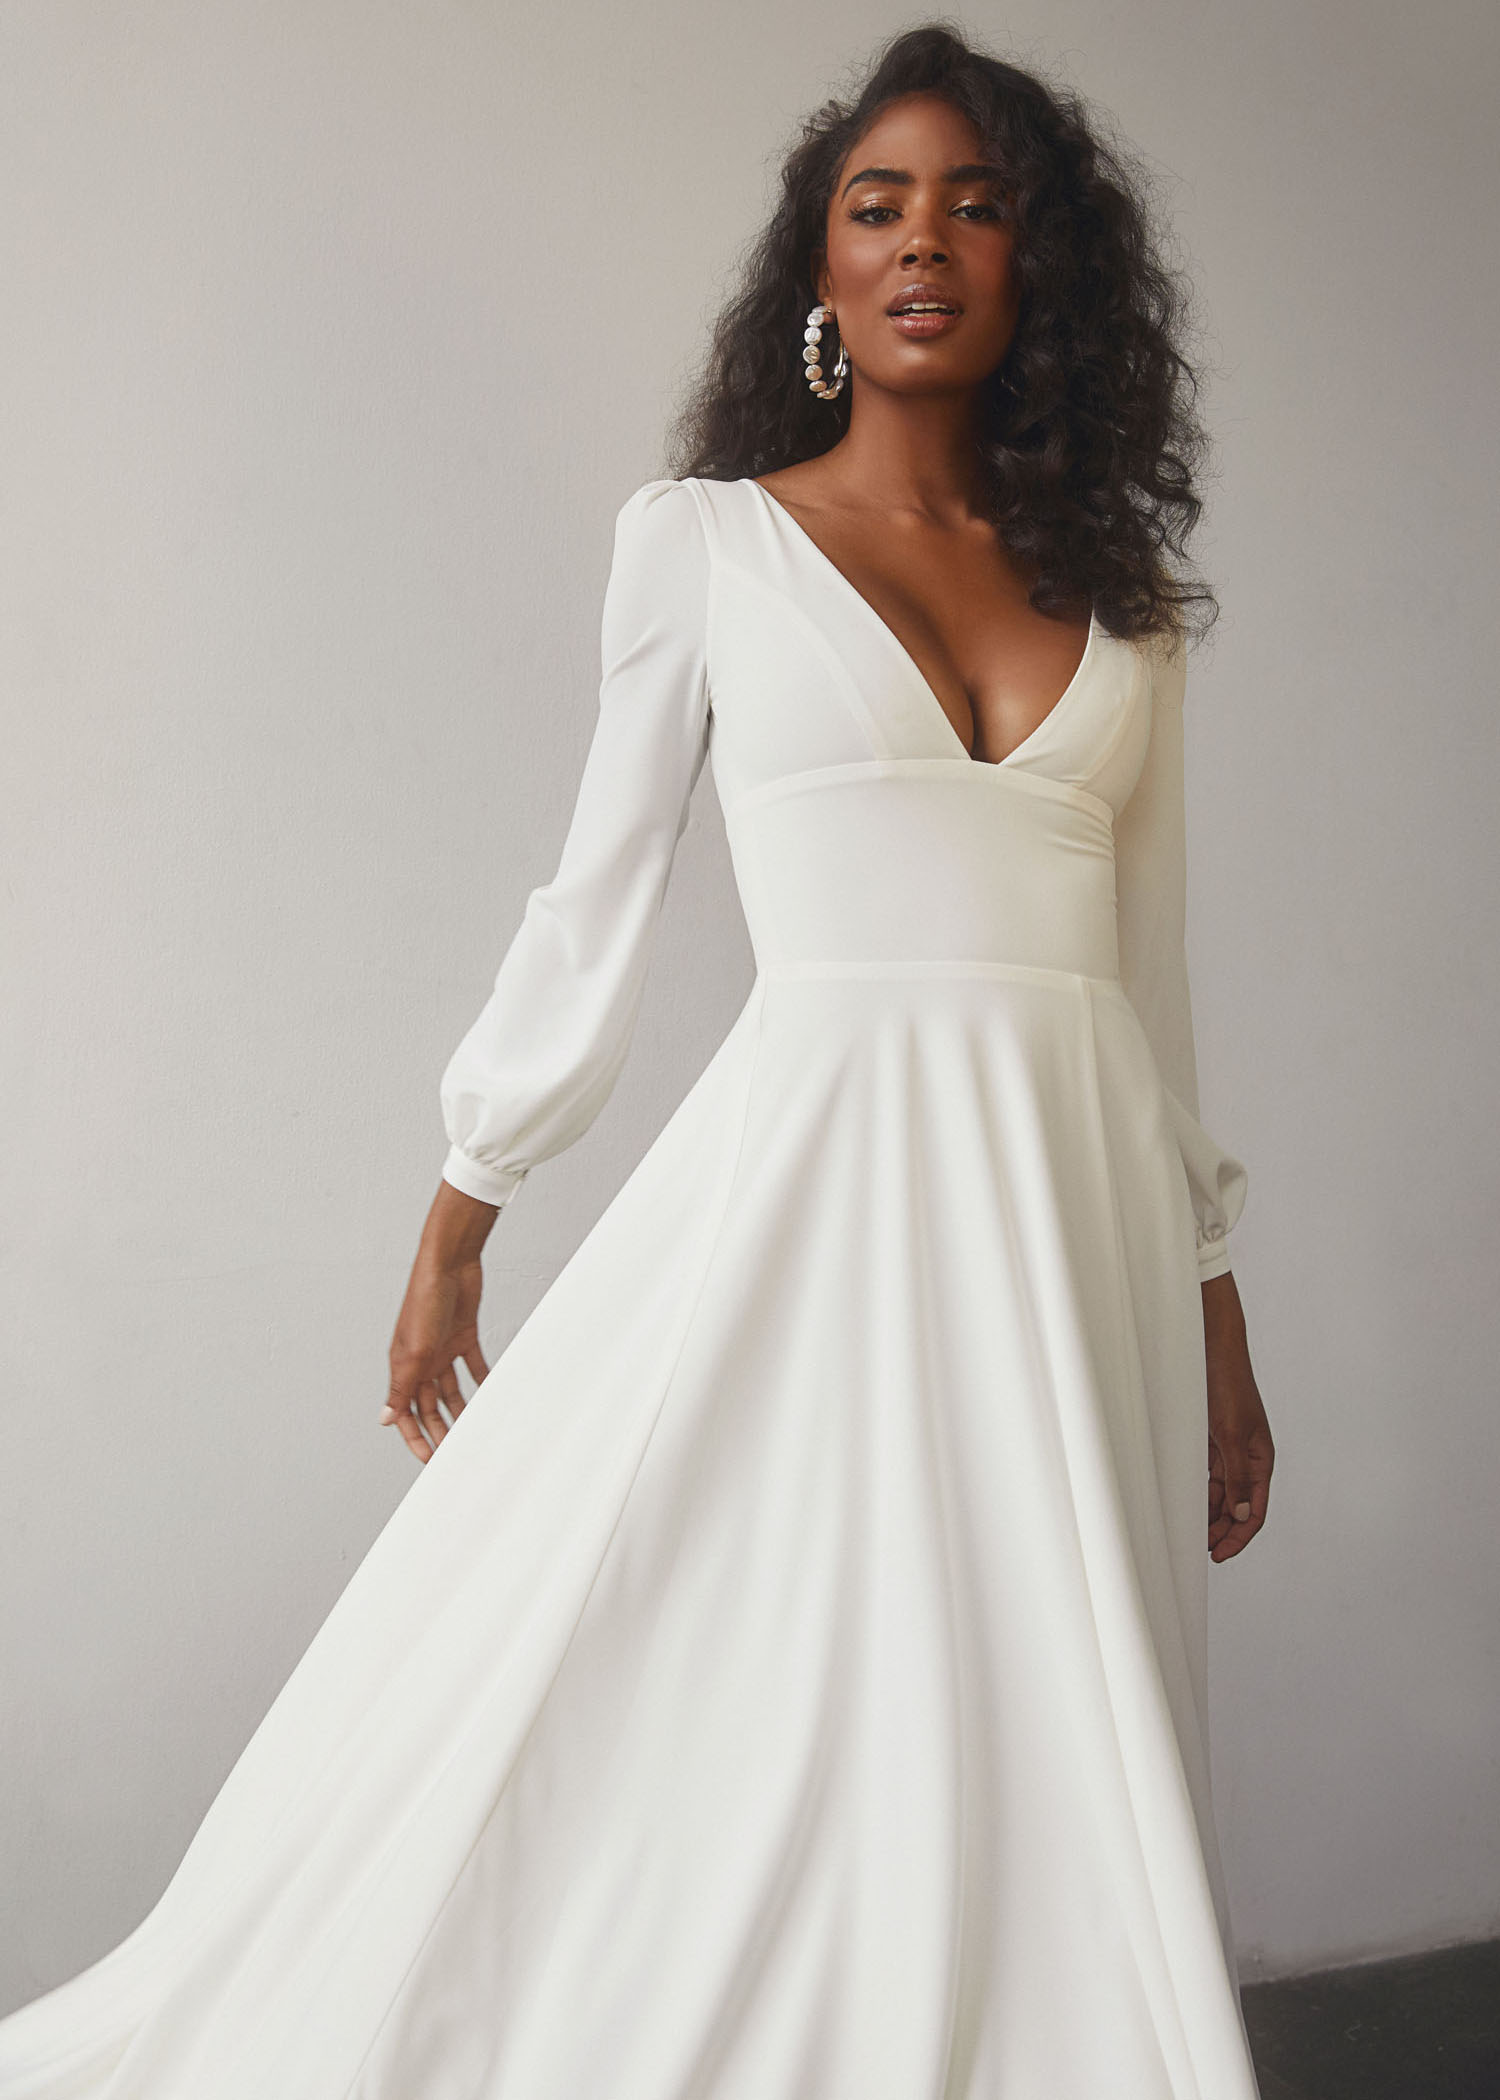 New Nostalgia: Latest Collection From Sustainable Wedding Dress Brand Scout Bridal